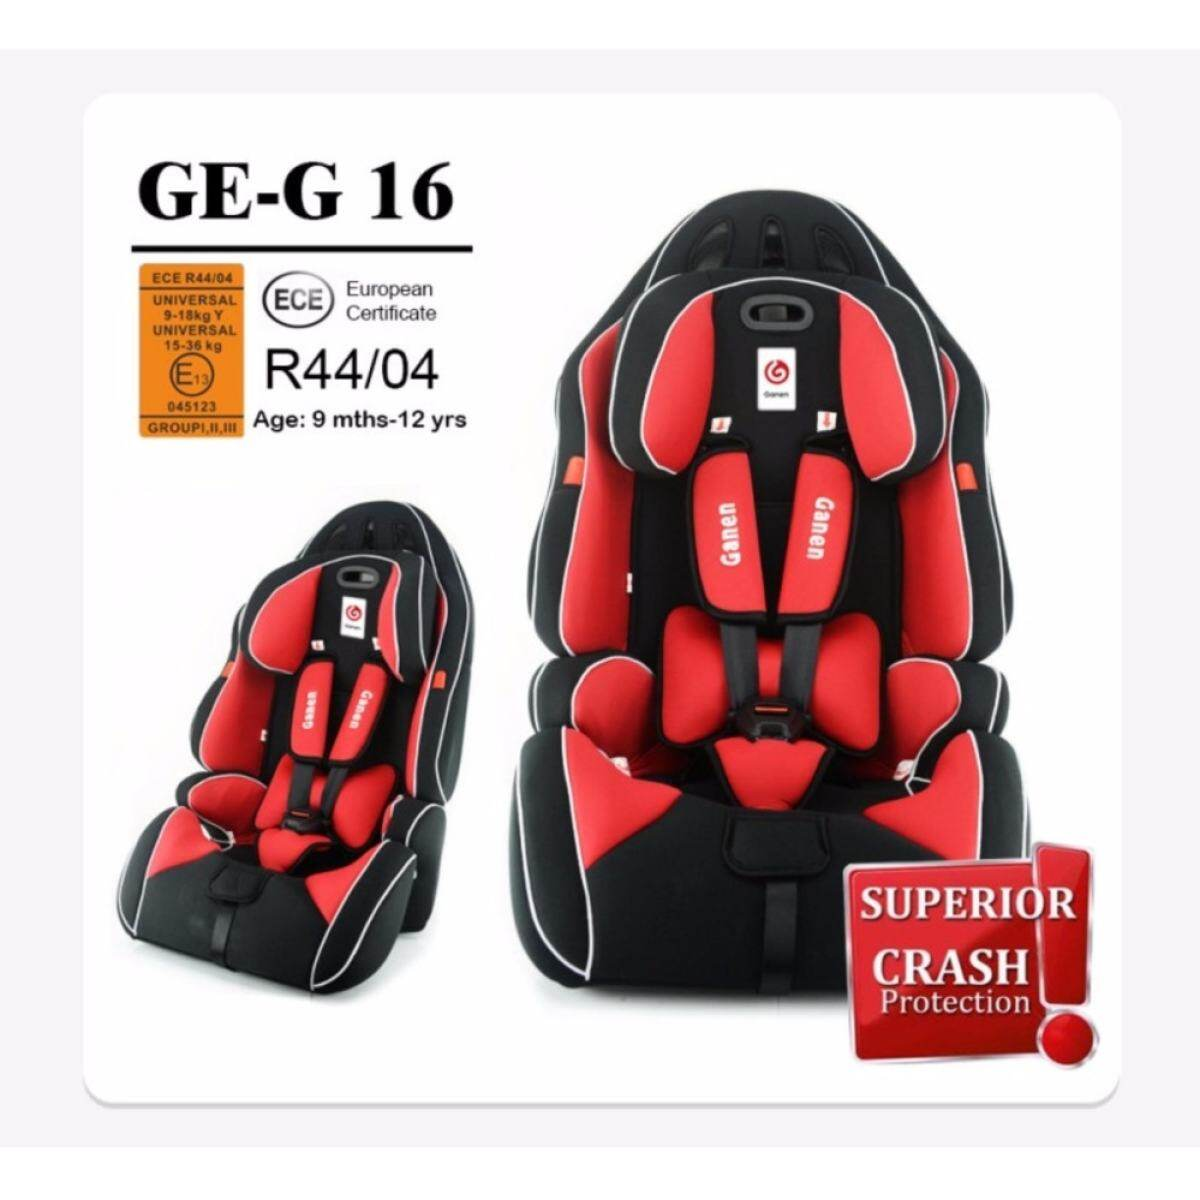 Ganen 3 IN 1 Baby And Toddler Car Seat European Standard R44/04 Certified Series GE-G09 / GE-G16